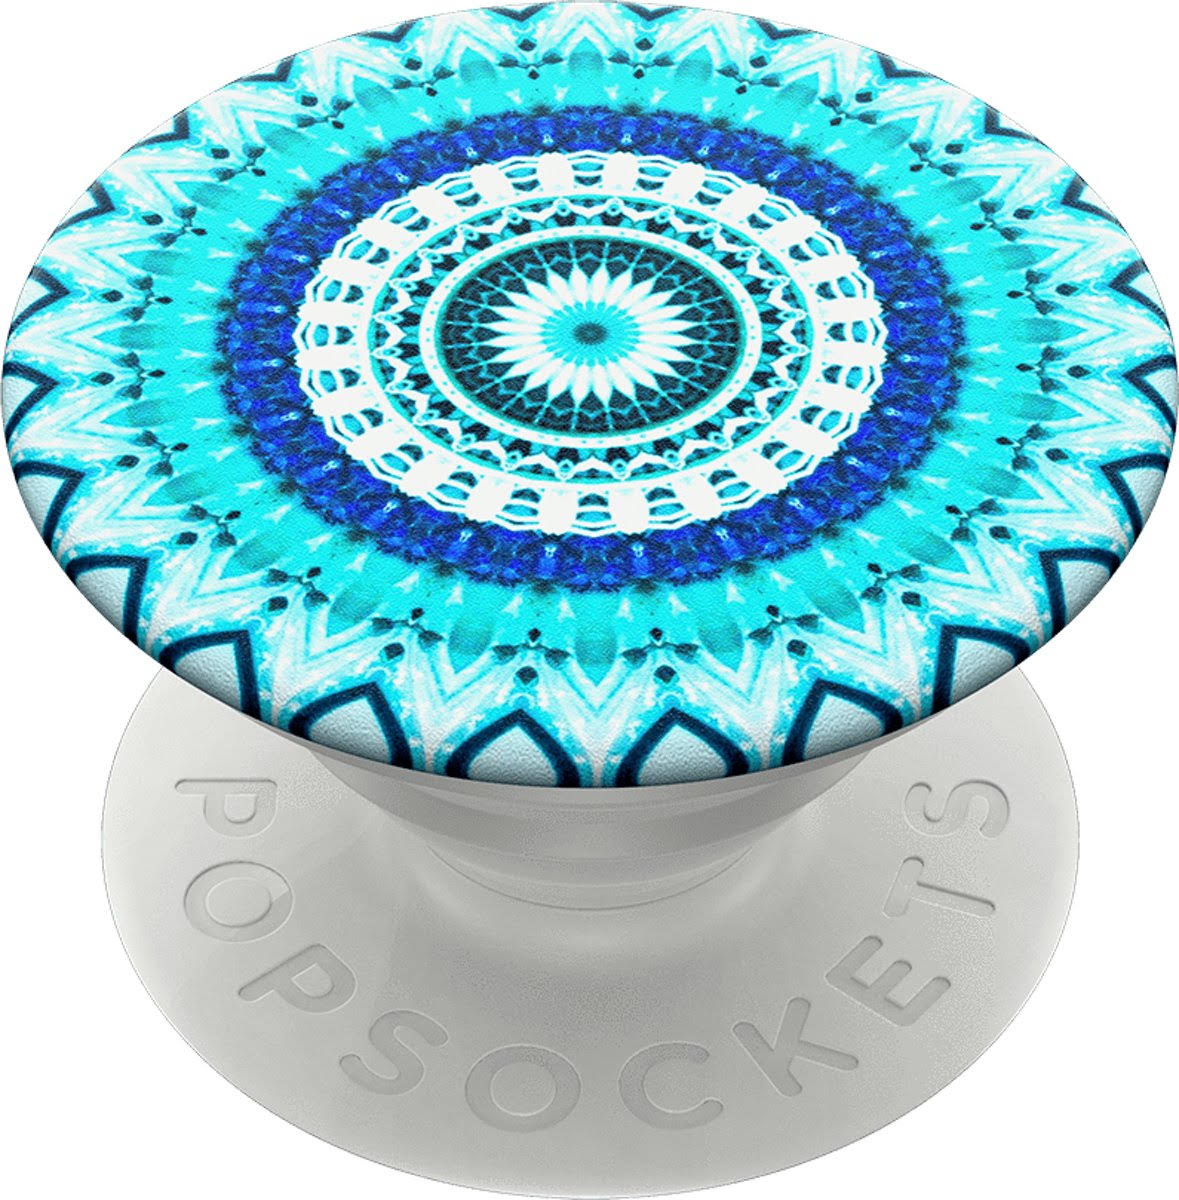 PopSockets Cell Phone Grip - Blue Floral Mandala